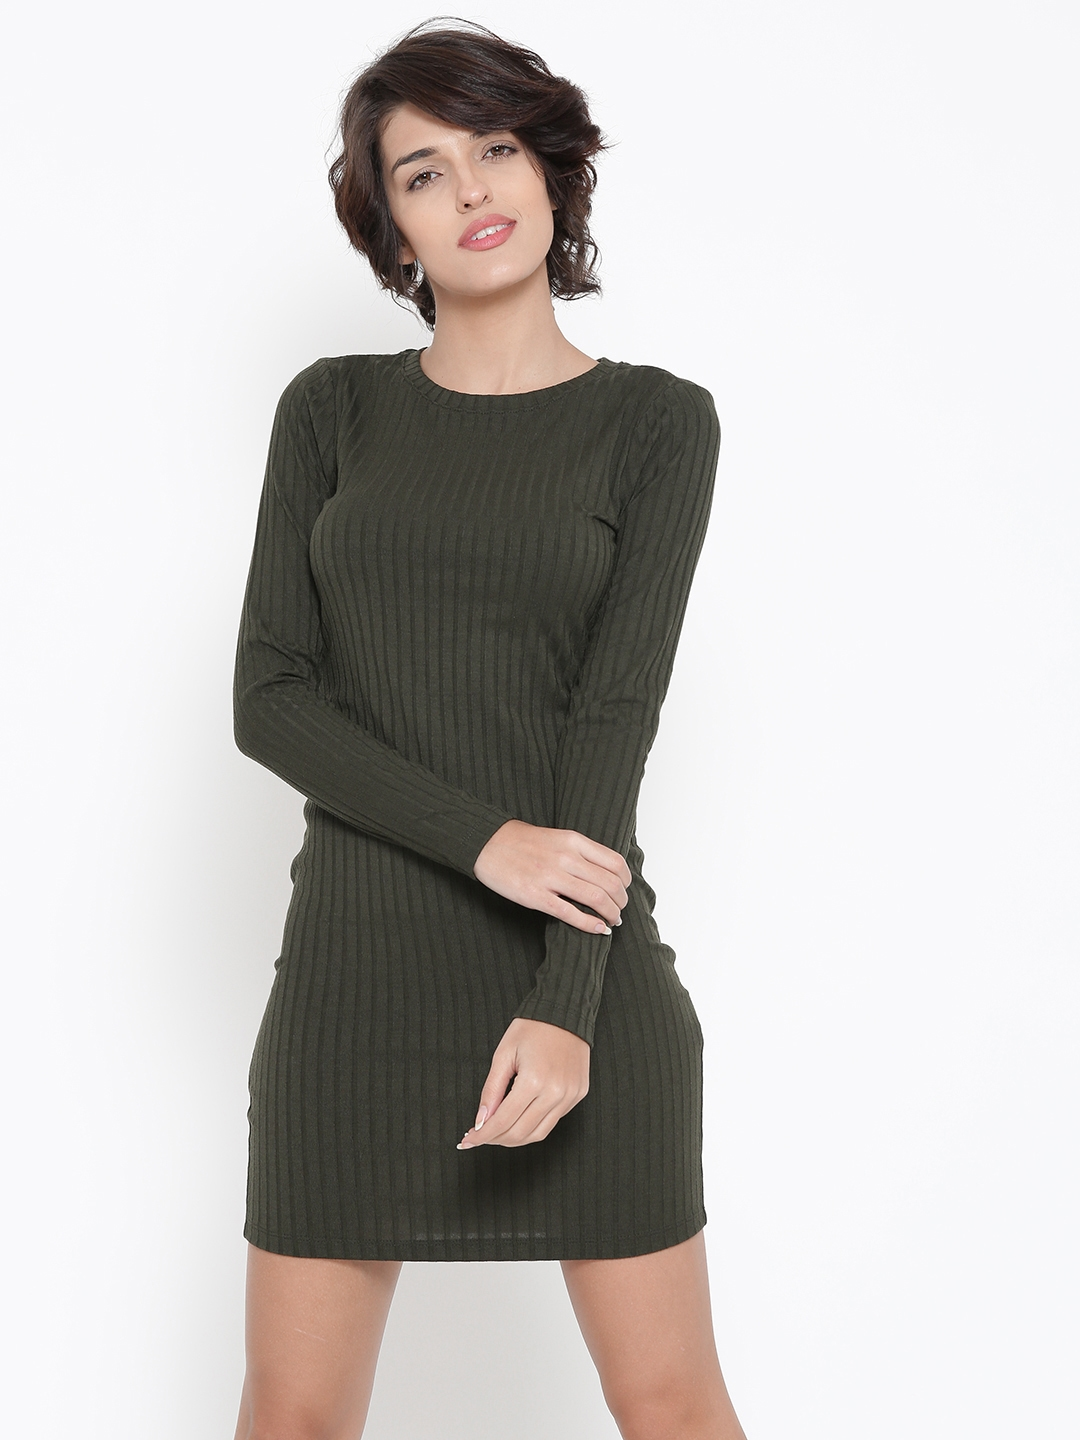 ba3f4a4f Buy FOREVER 21 Women Olive Green Self Striped Sheath Dress - Dresses ...